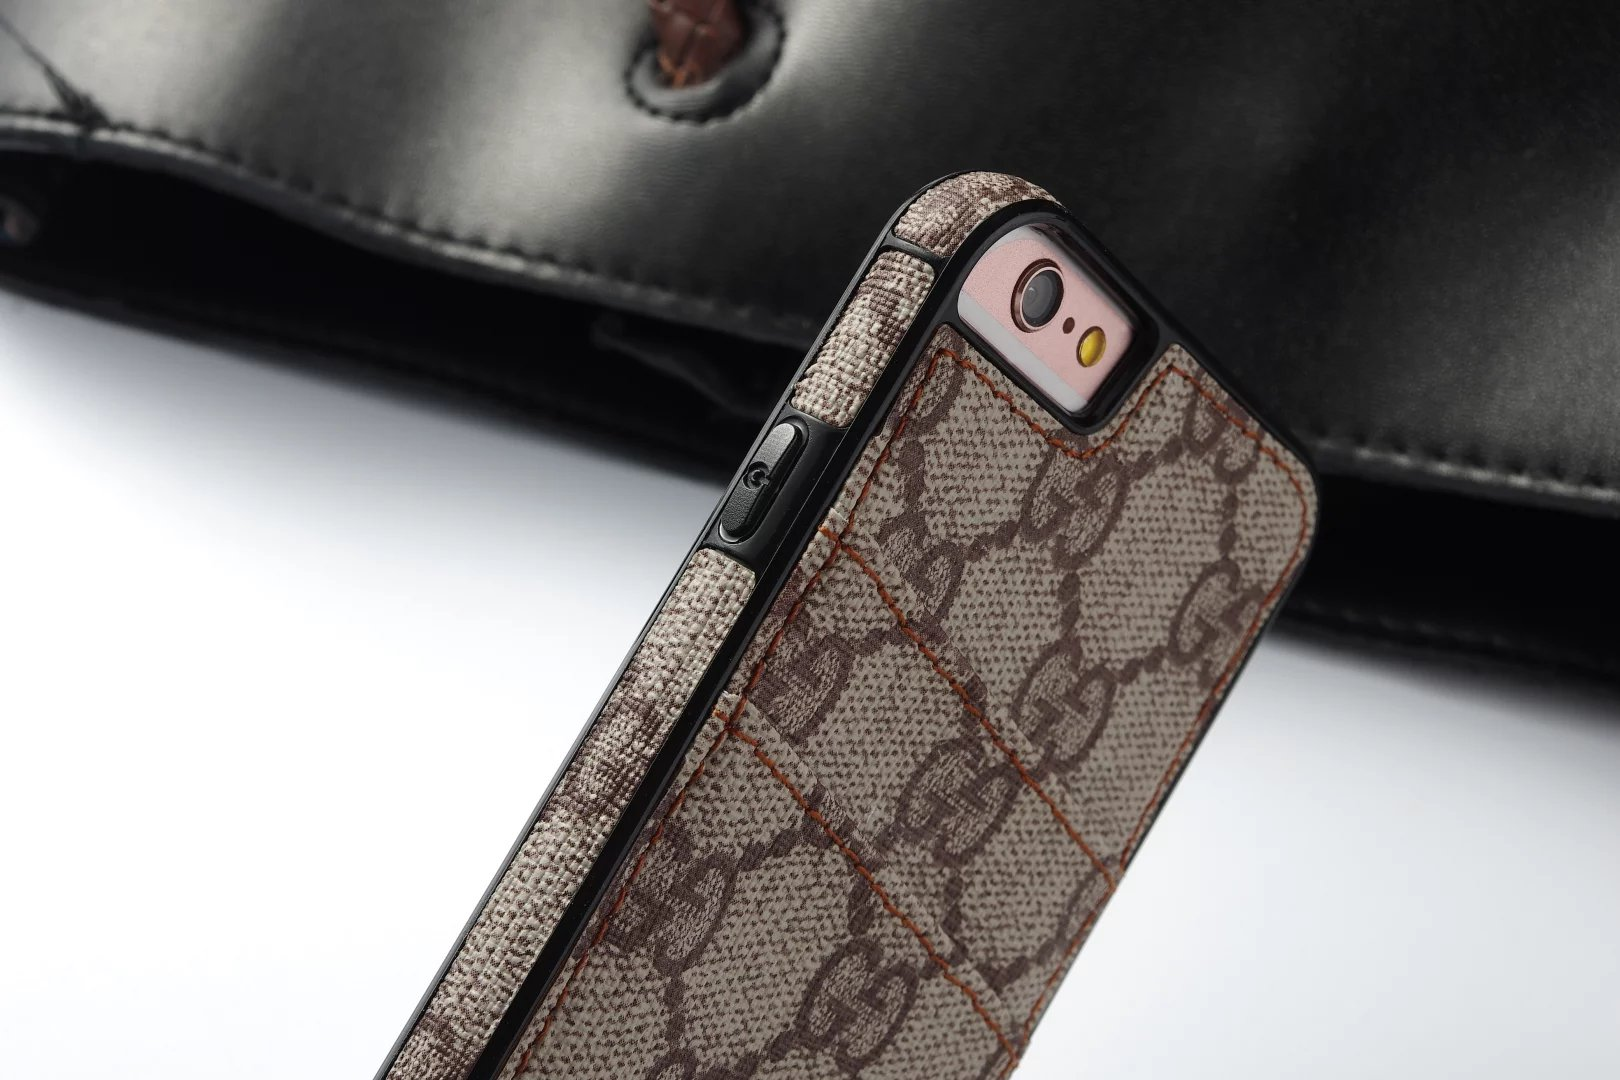 iphone handyhülle mit foto iphone hülle bedrucken lassen günstig Gucci iphone6s plus hülle lederhülle iphone 6s Plus fotohülle iphone 6s Plus billige iphone hüllen bedruckte iphone hülle handy ca6s 6slbst designen eigene handyhülle erstellen